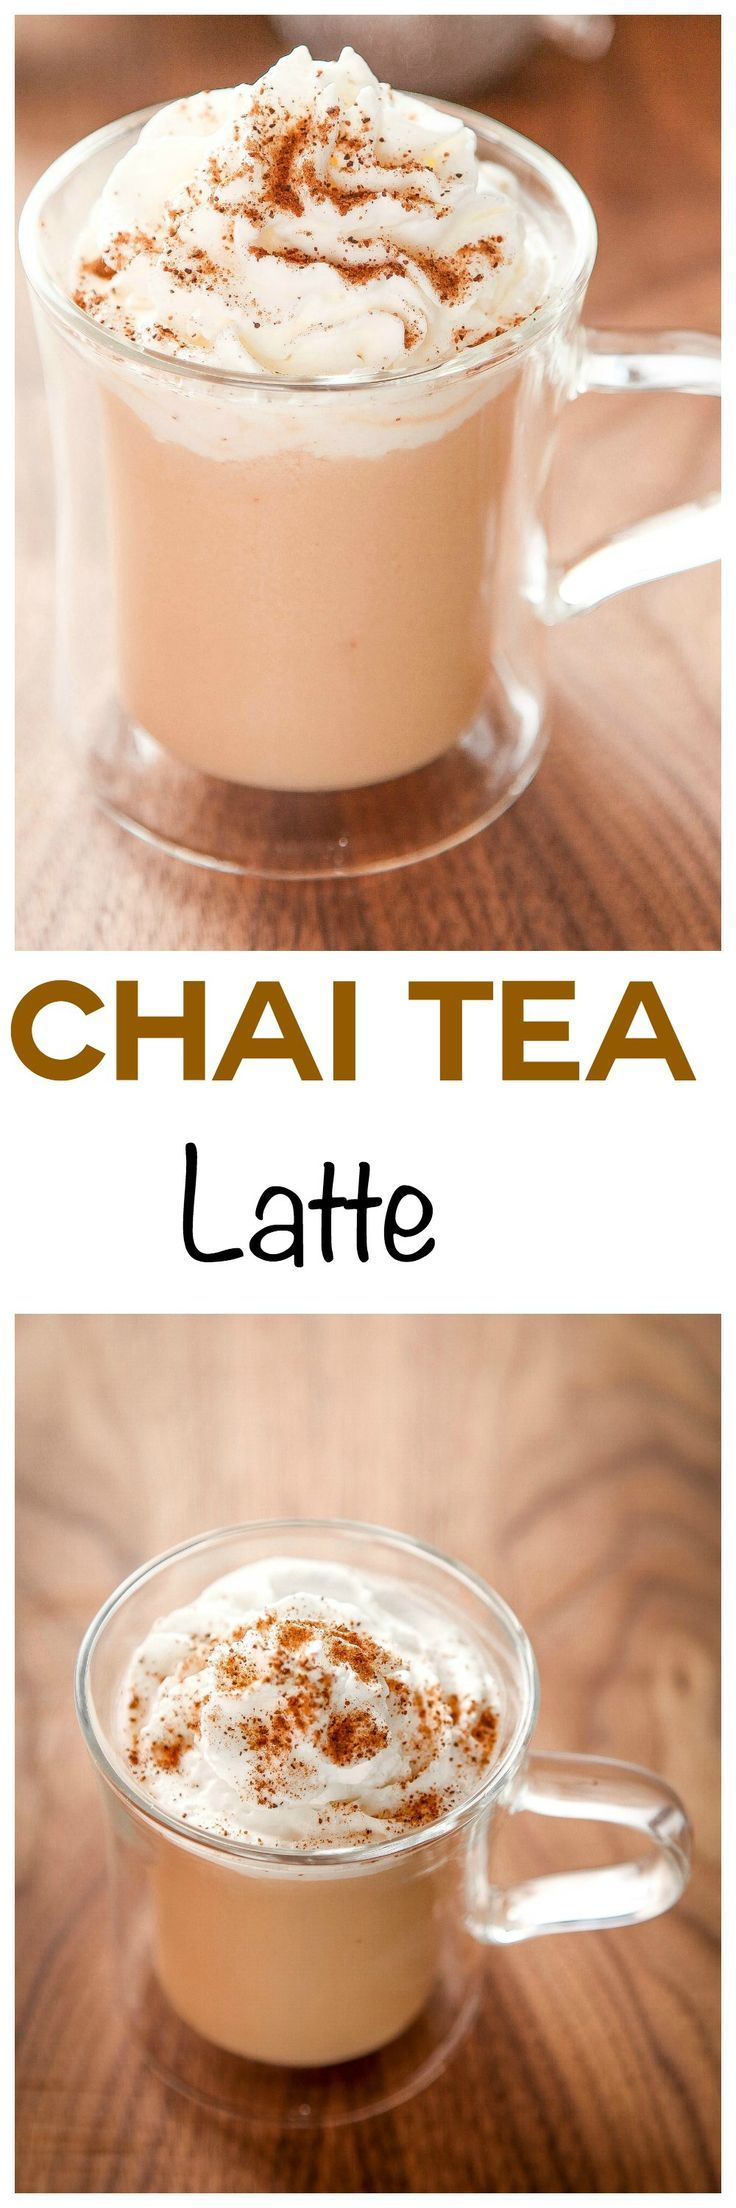 Chai Tea Latte: Warming chai spices and comforting tea make this beverage perfect for chilly days. Ready in less than 10 minutes!